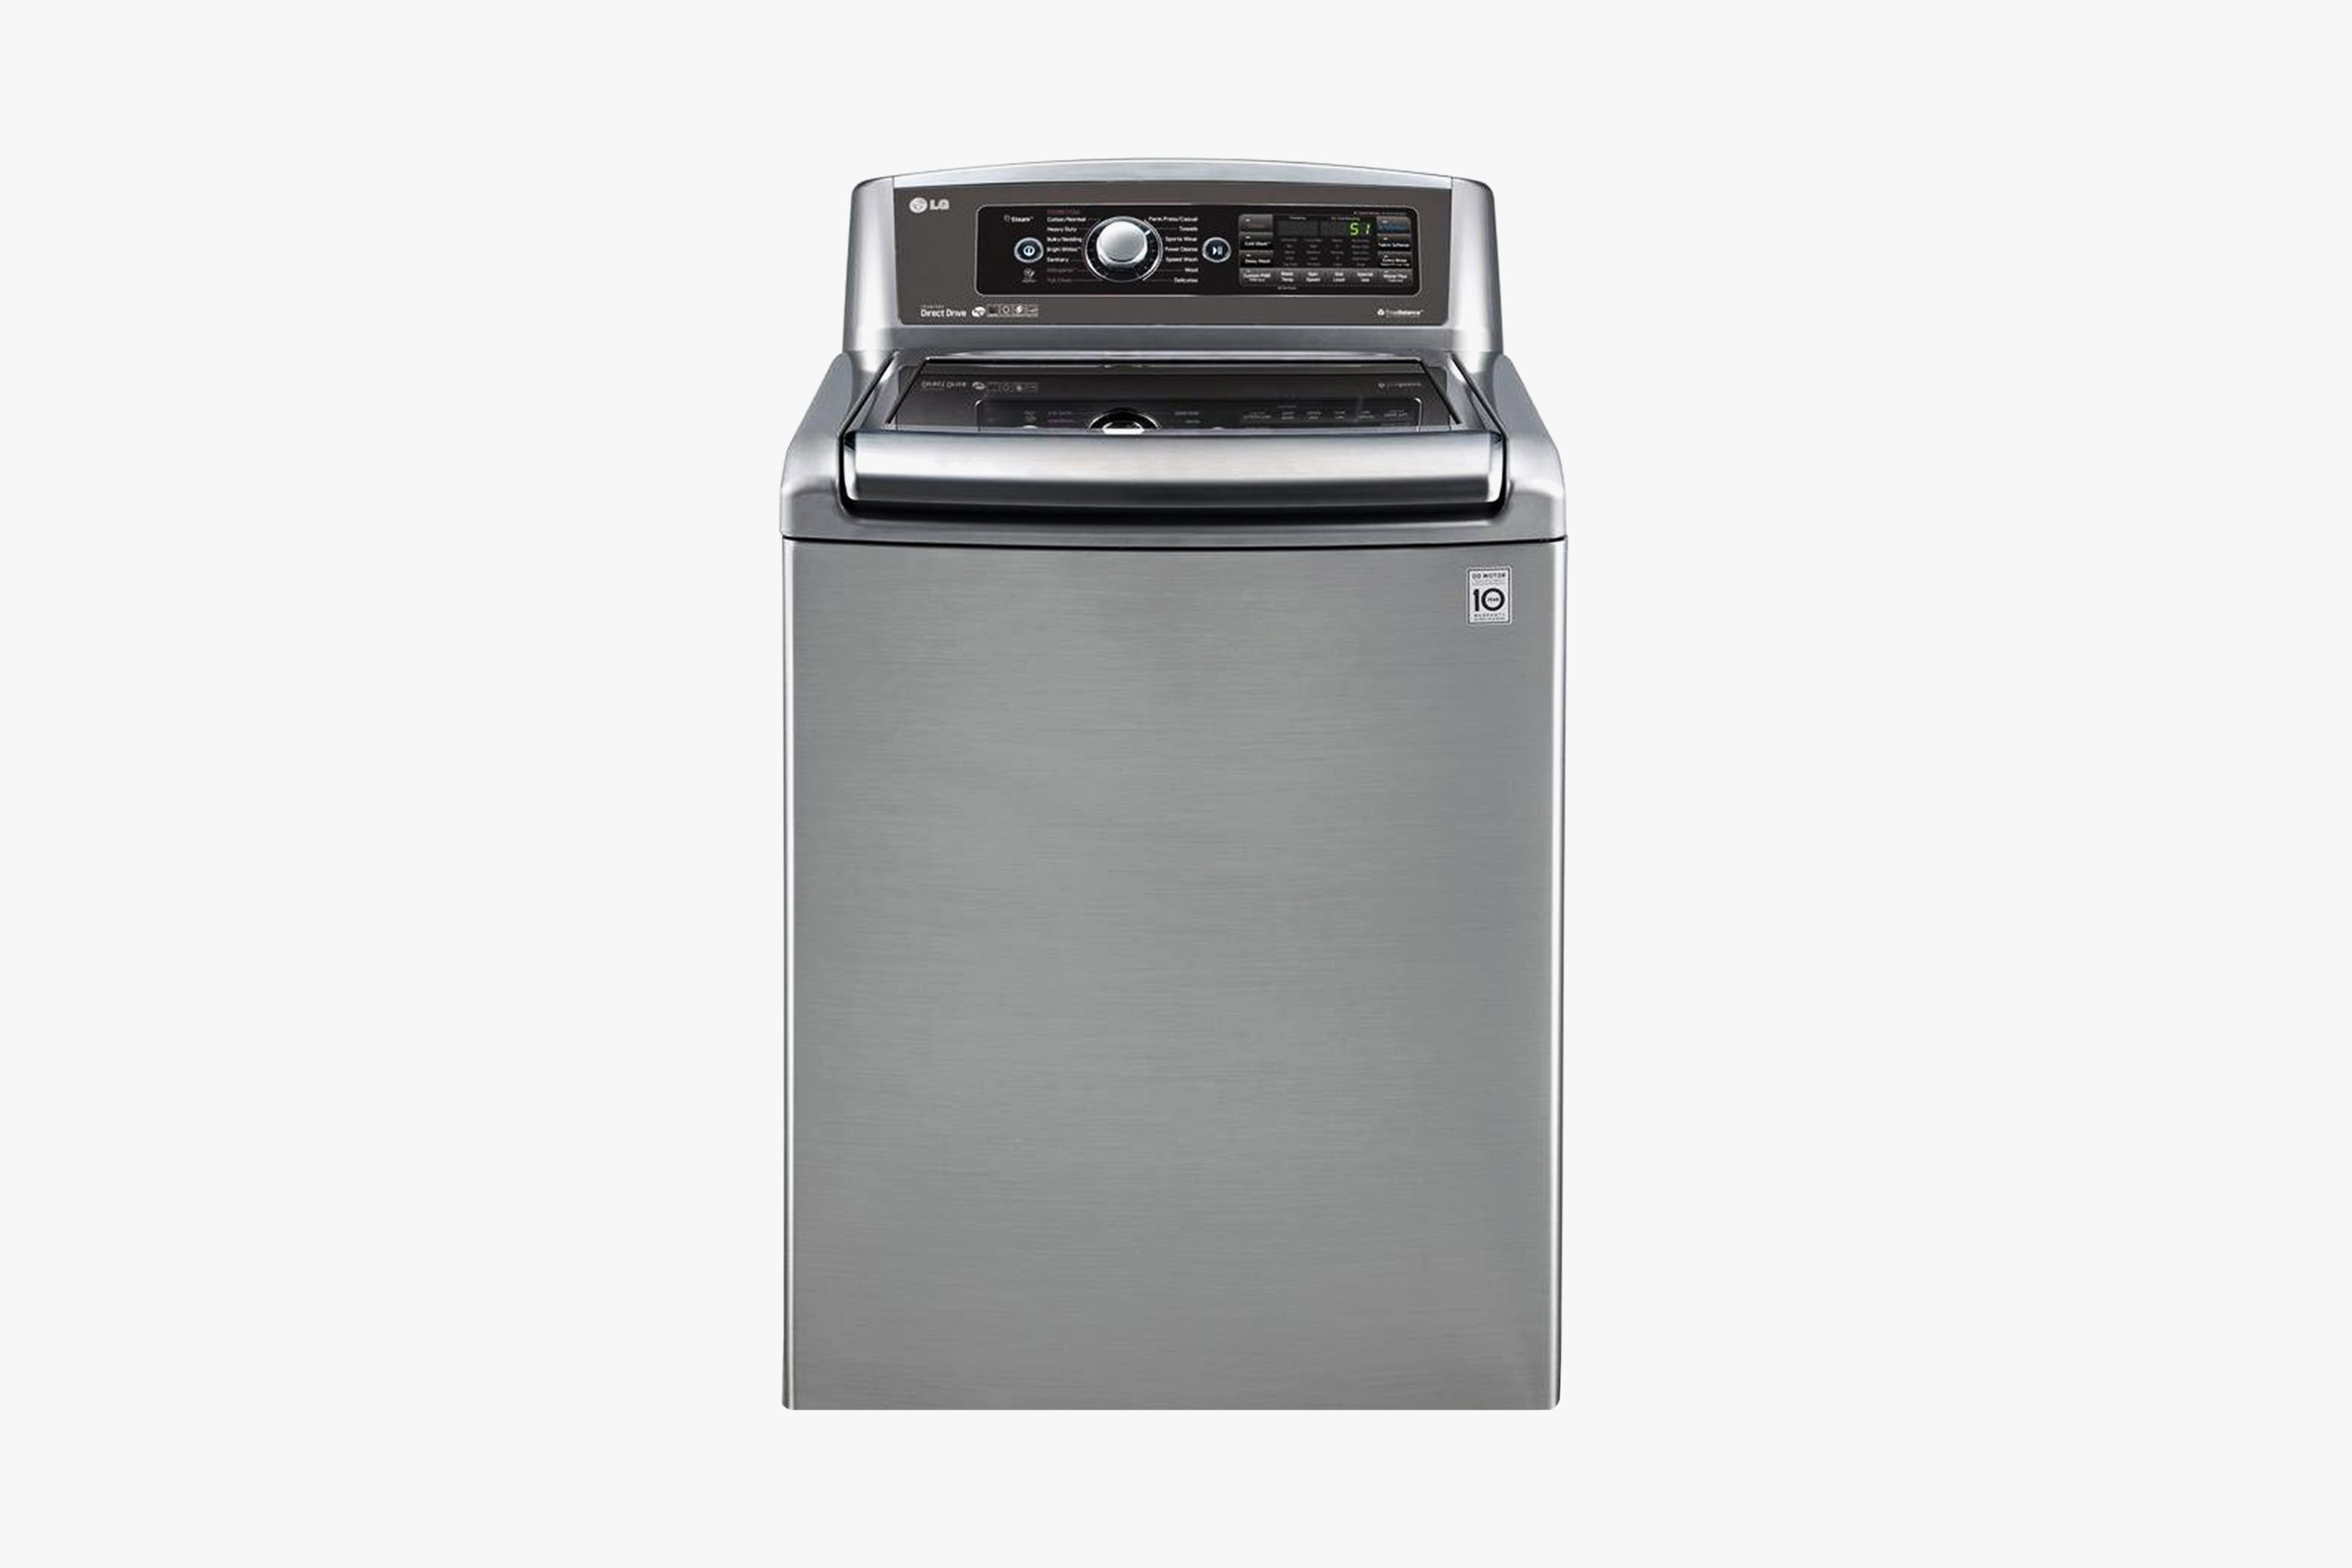 10 Best Washing Machines To Buy In 2018 Top Rated Machine Together With Samsung Electric Clothes Dryer Additionally Maytag For Convenience